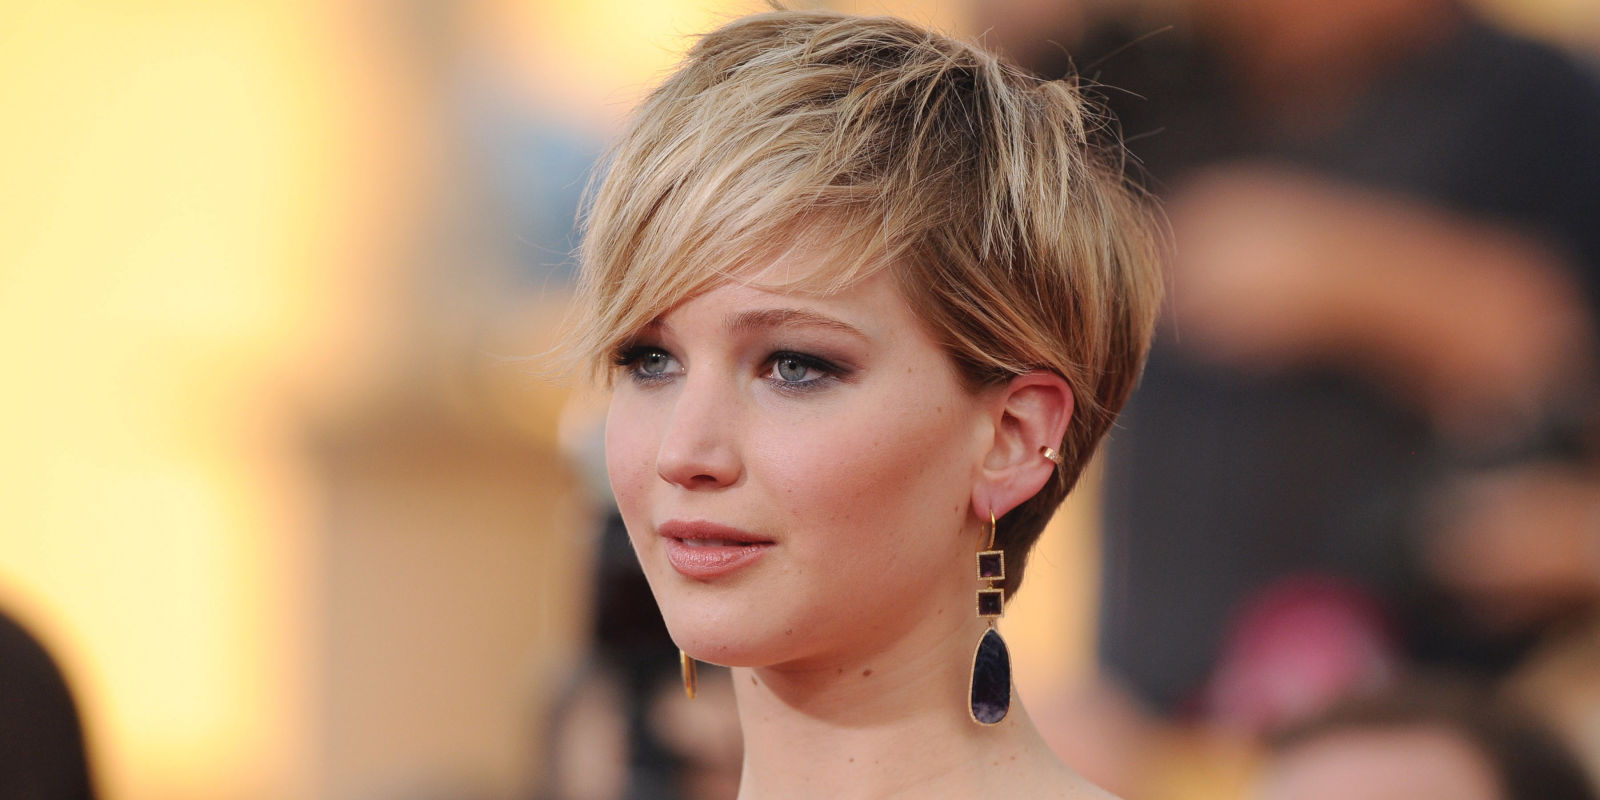 30 Best Pixie Cuts on Celebrities - Pixie Hairstyle Ideas